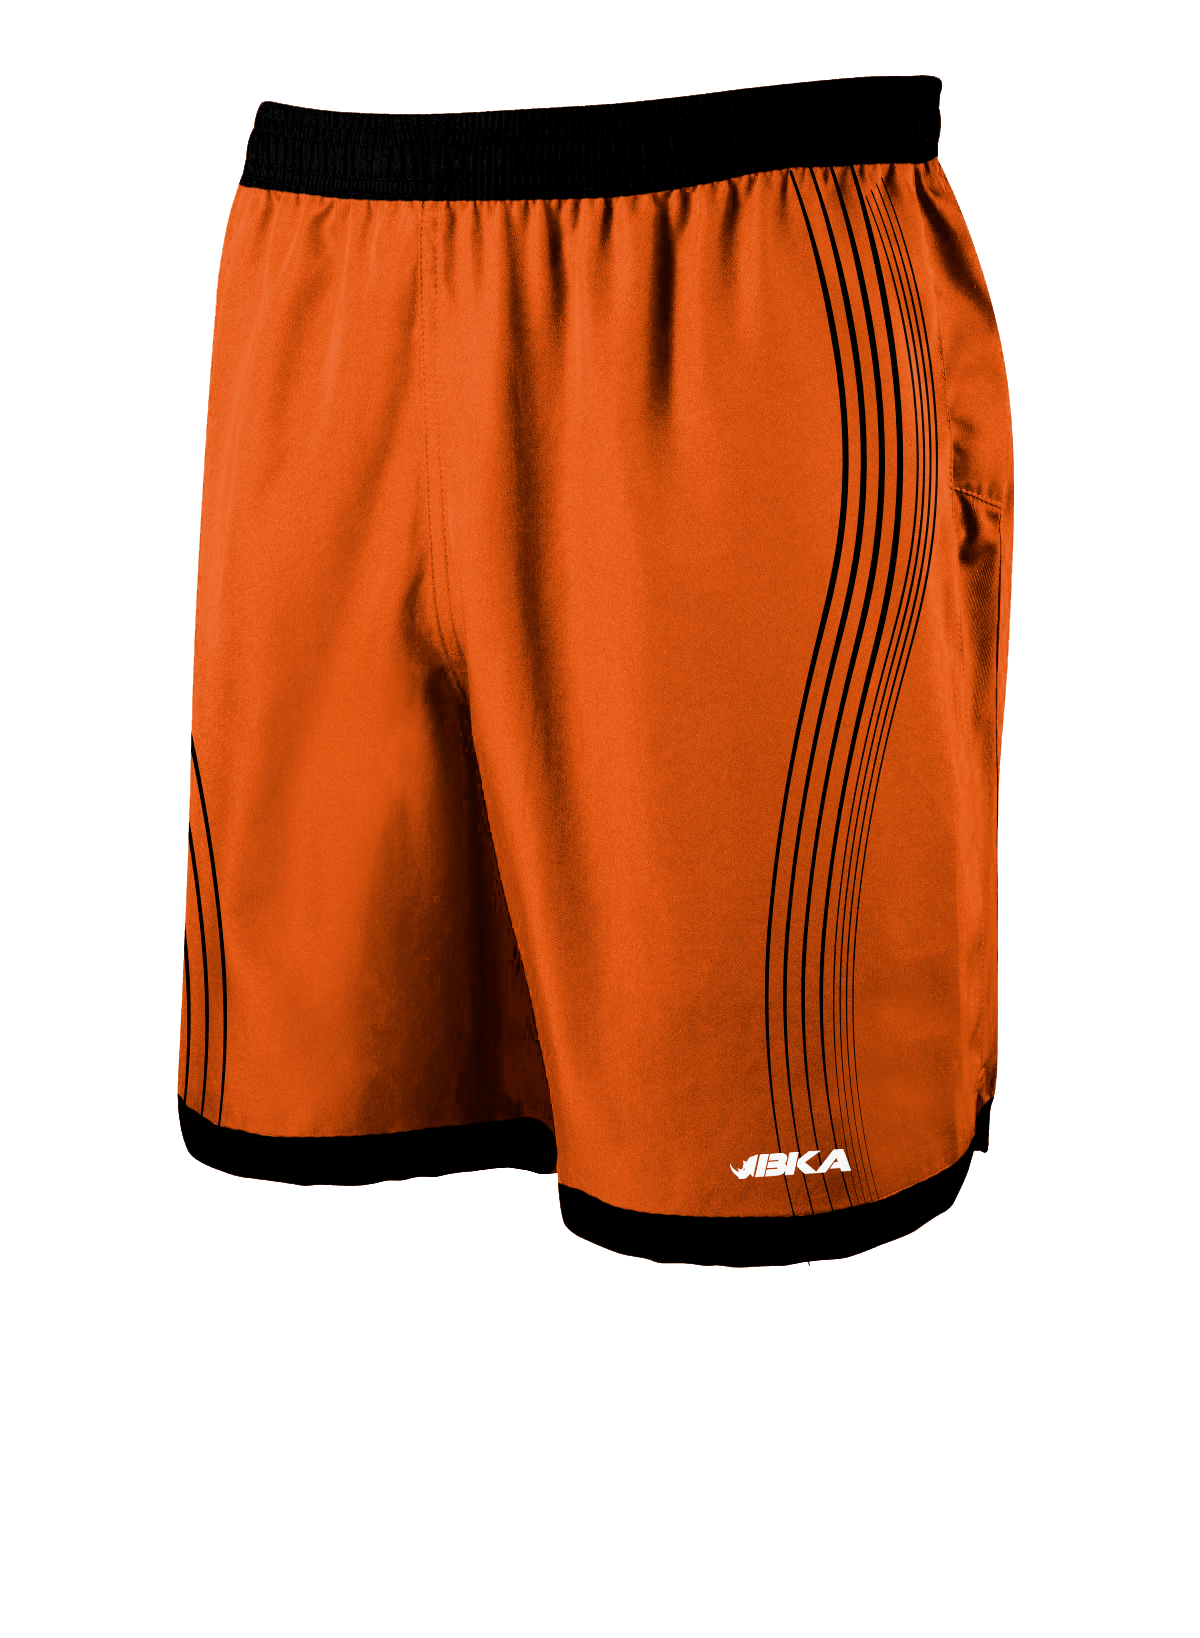 pantalon wave naranja